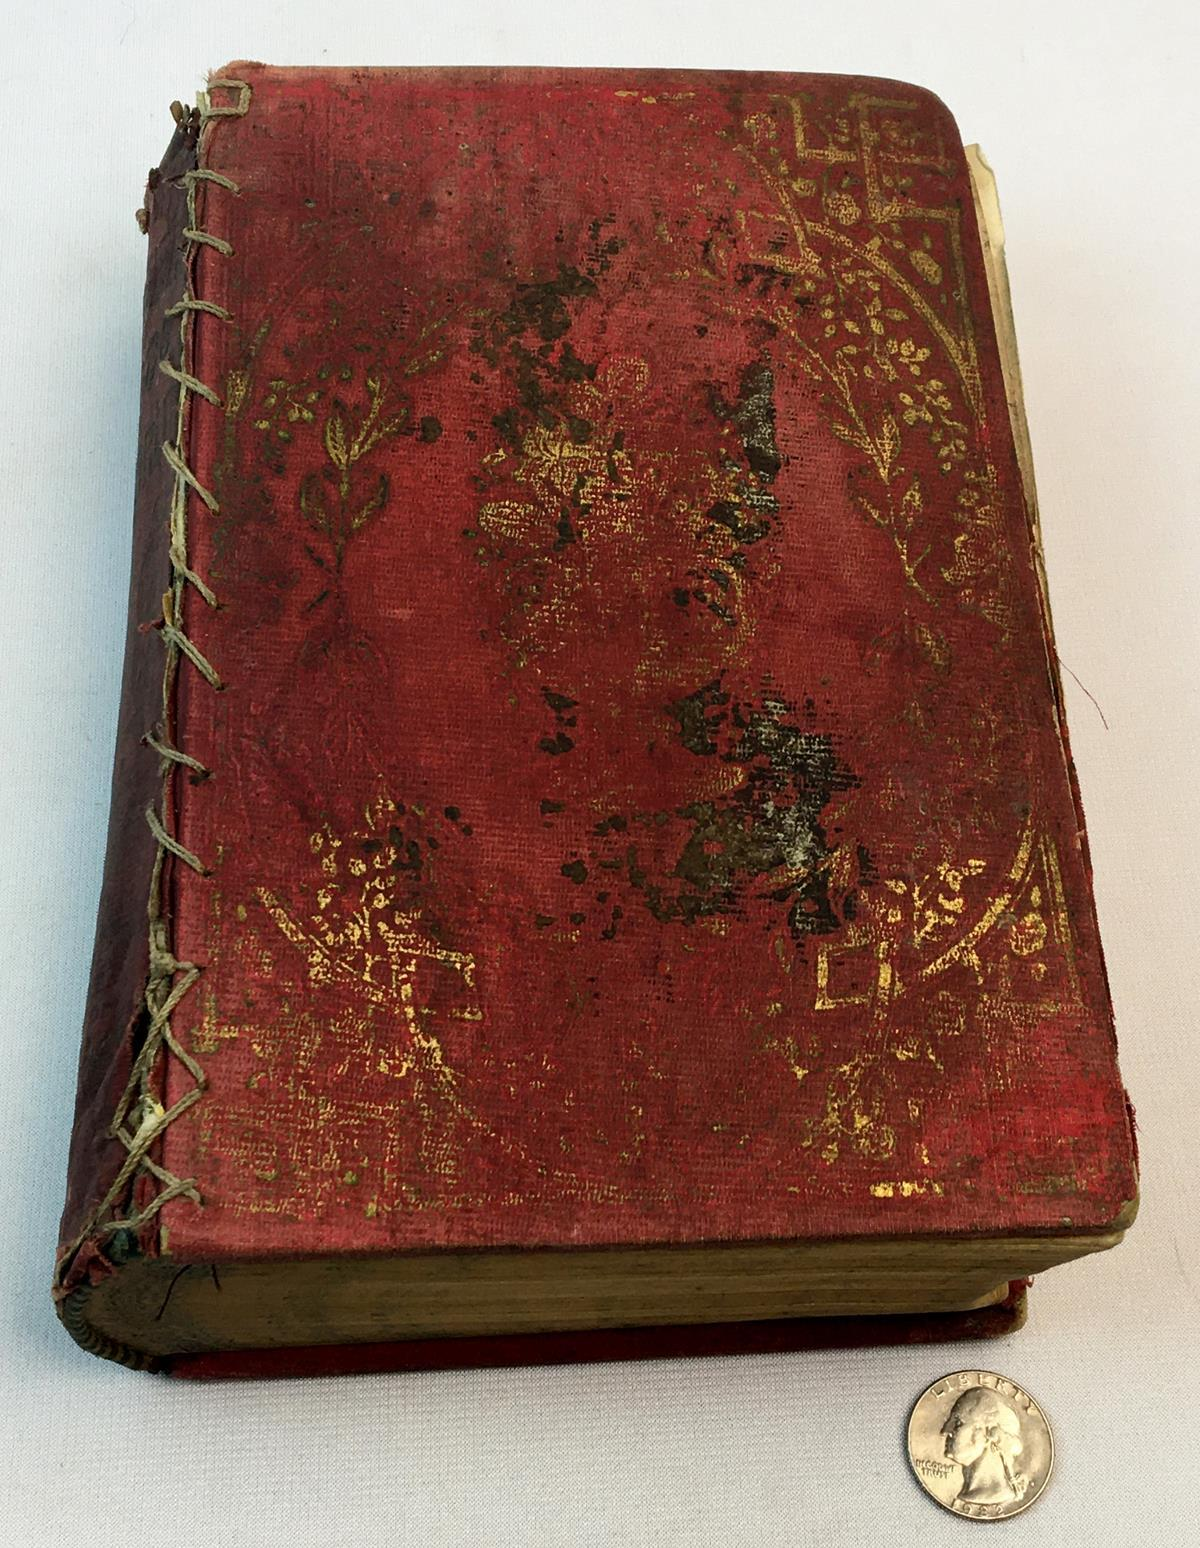 1857 The Pioneer Heroes of the New World by Henry Howard Brownell